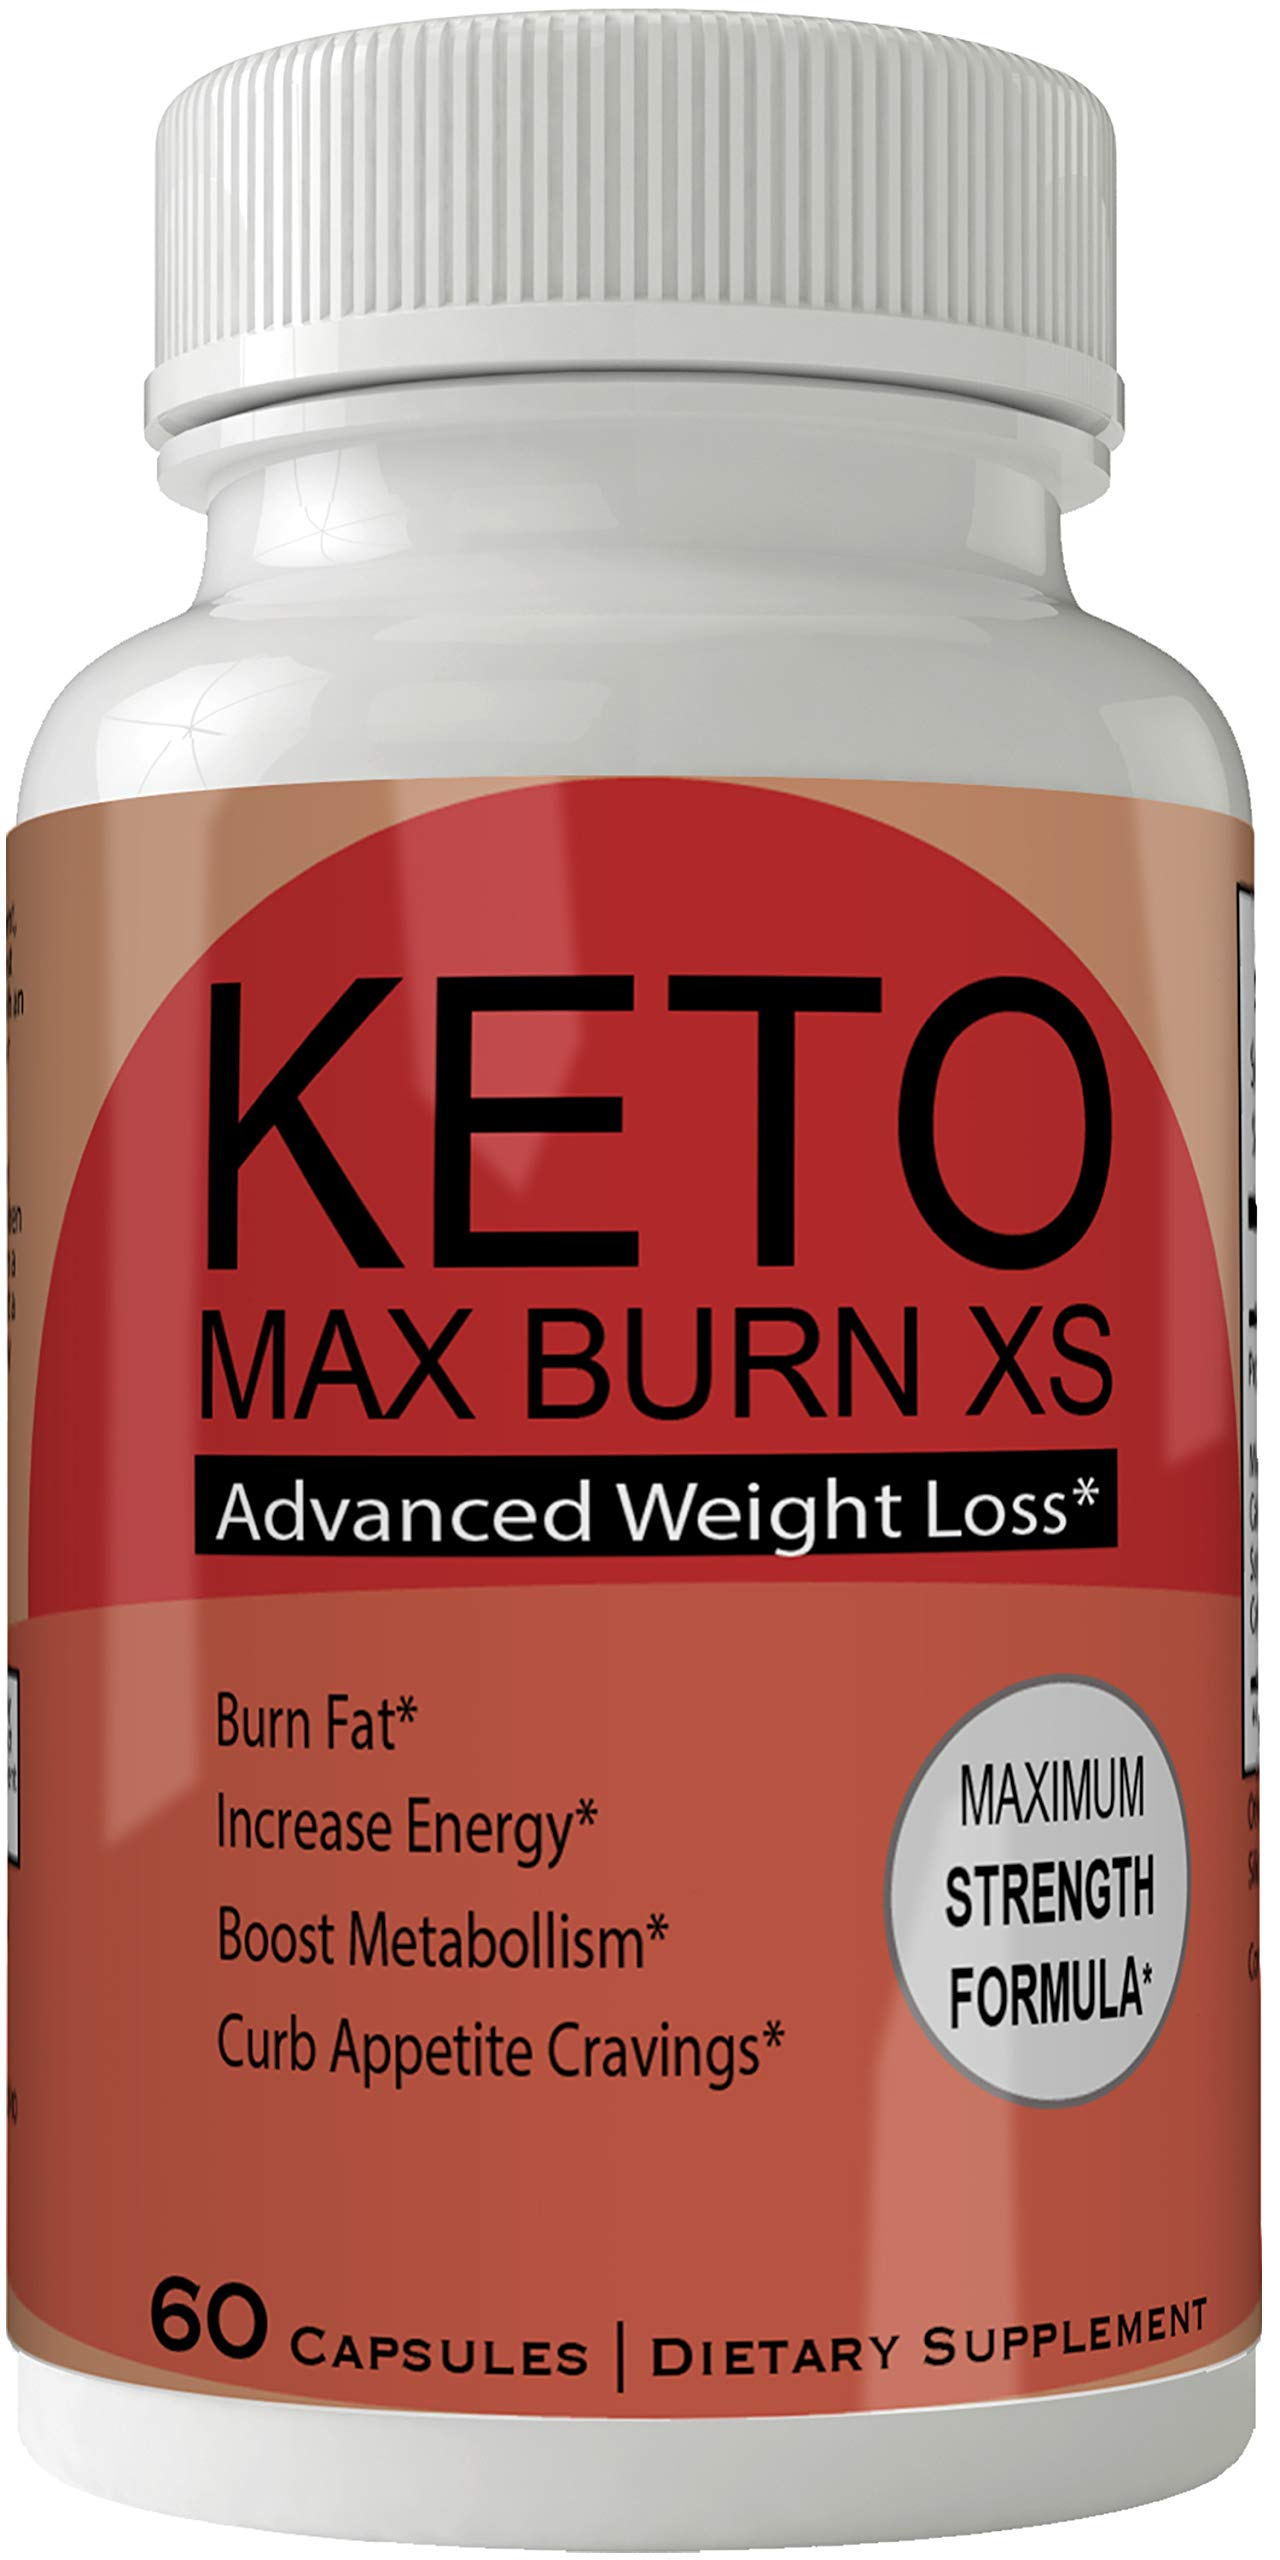 Keto Max Burn XS Pills Advance Weight Loss Supplement Appetite Suppressant Natural Ketogenic 800 mg Formula with BHB Salts Ketone Diet Capsules to Boost Metabolism, Energy and Focus